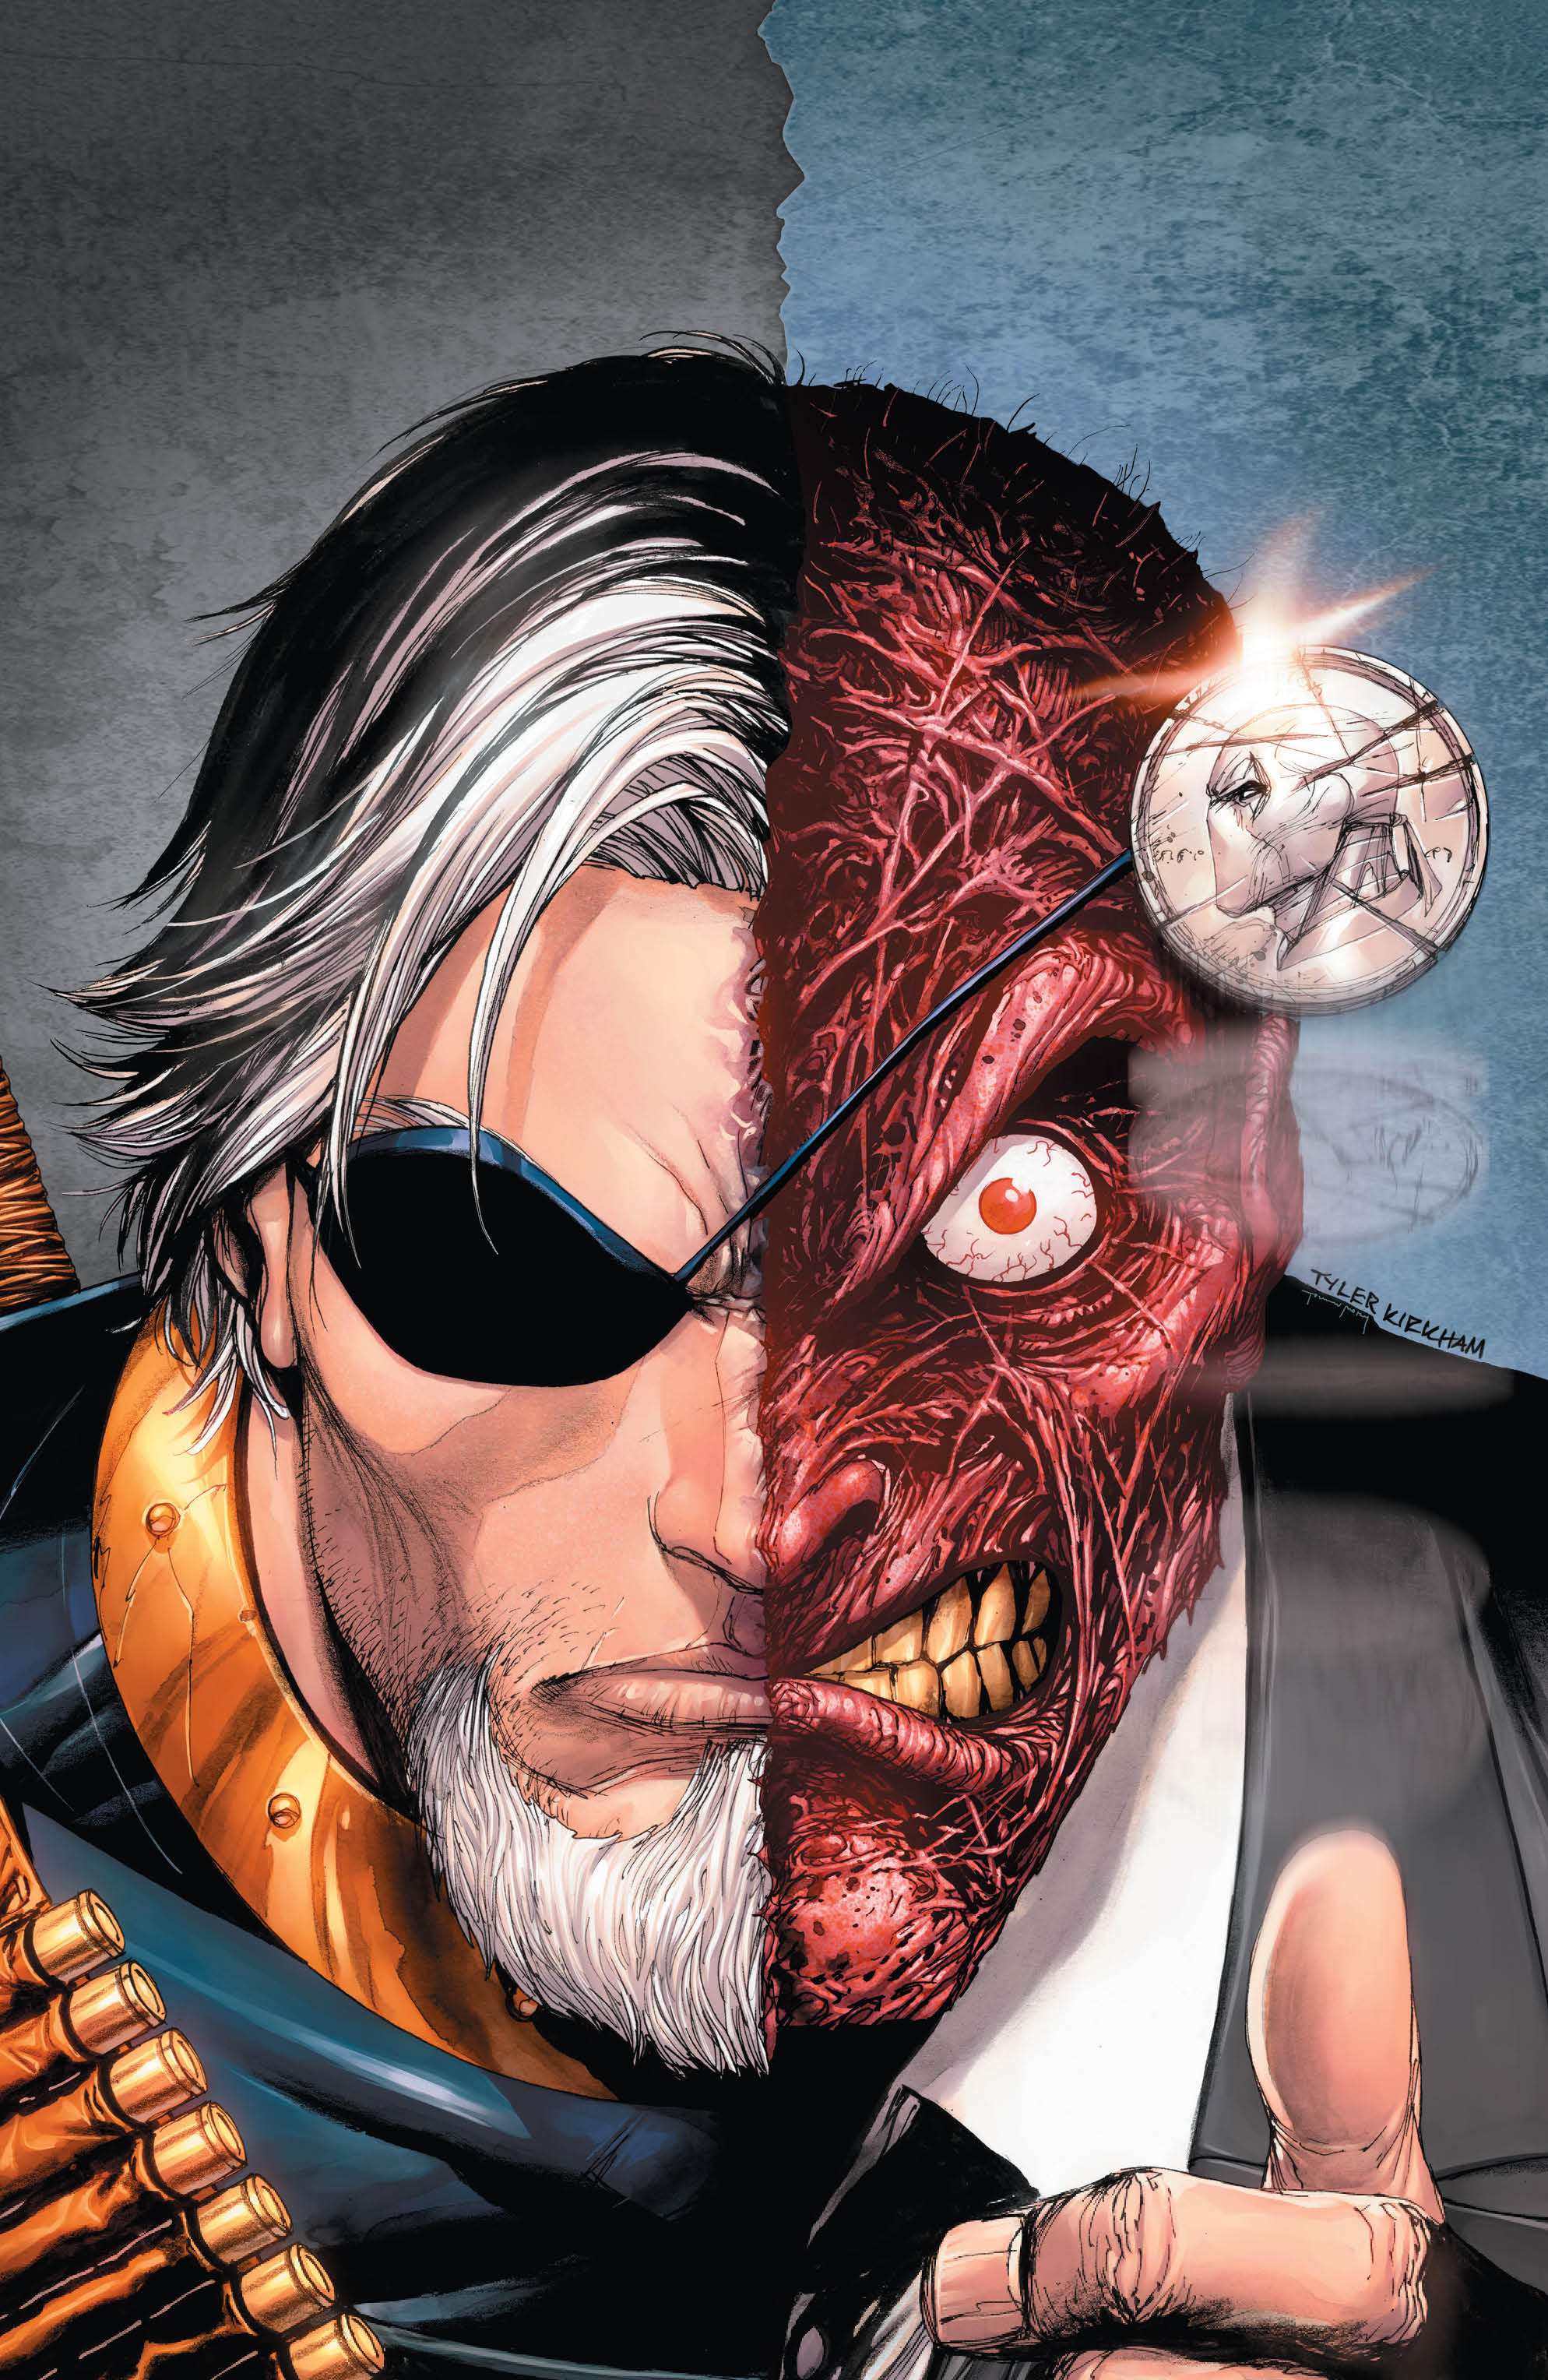 Deathstroke finally meets his match: Arkham Asylum?!